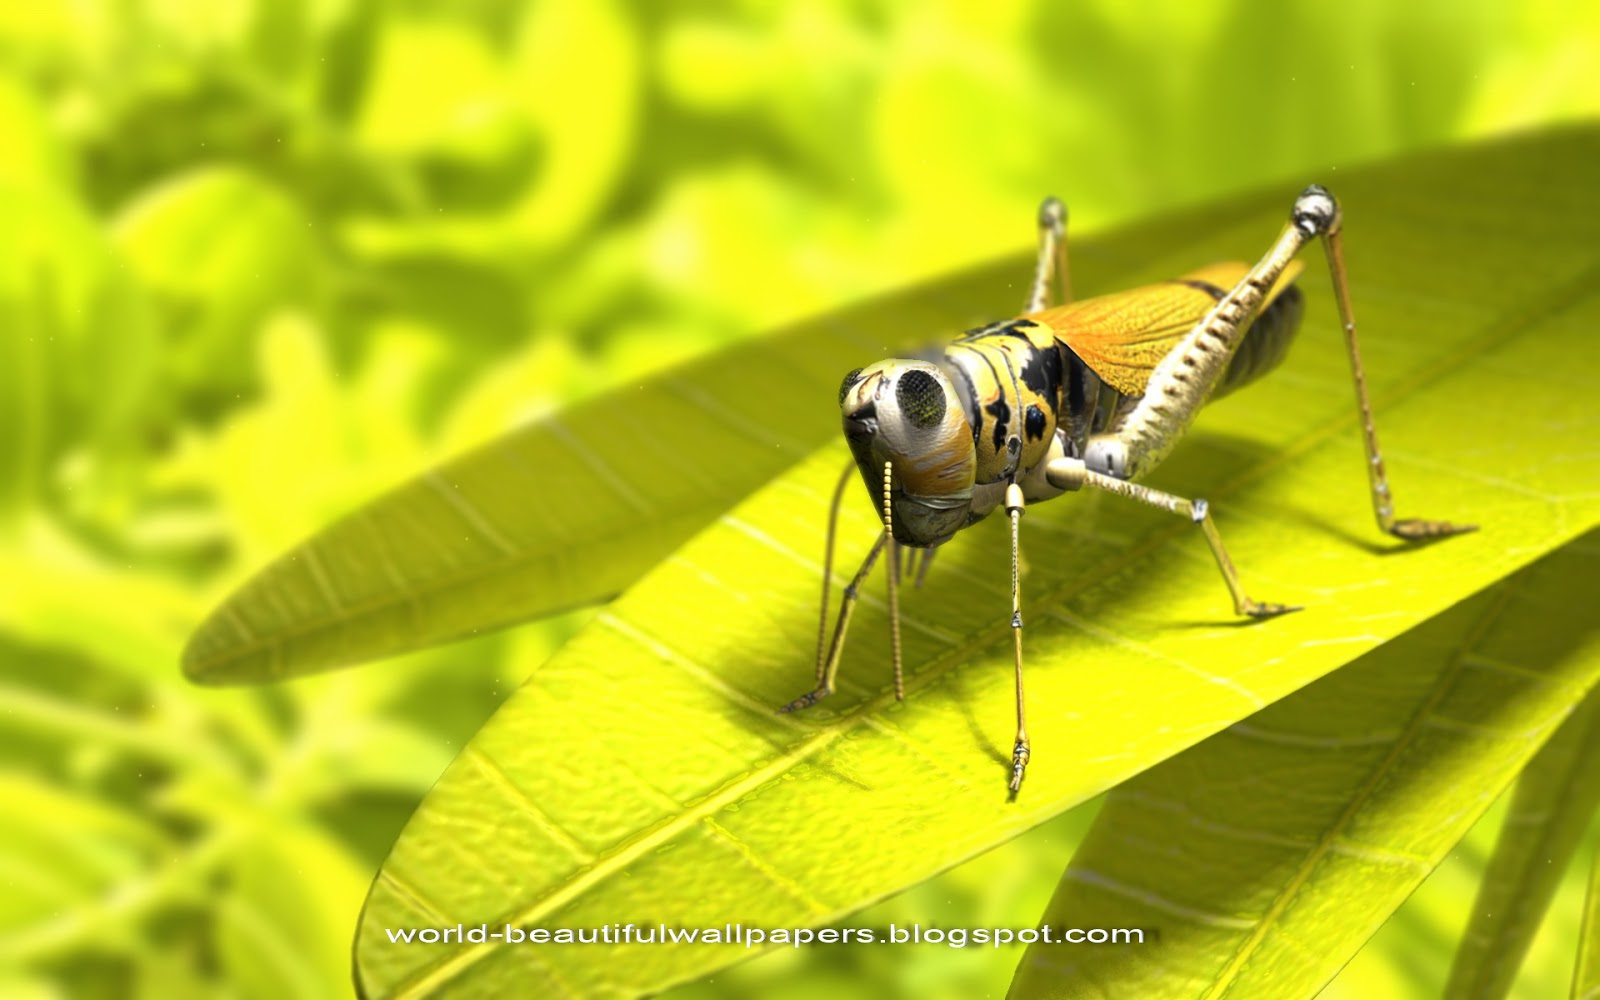 wallpaperspiolt: grasshoppers wallpaper